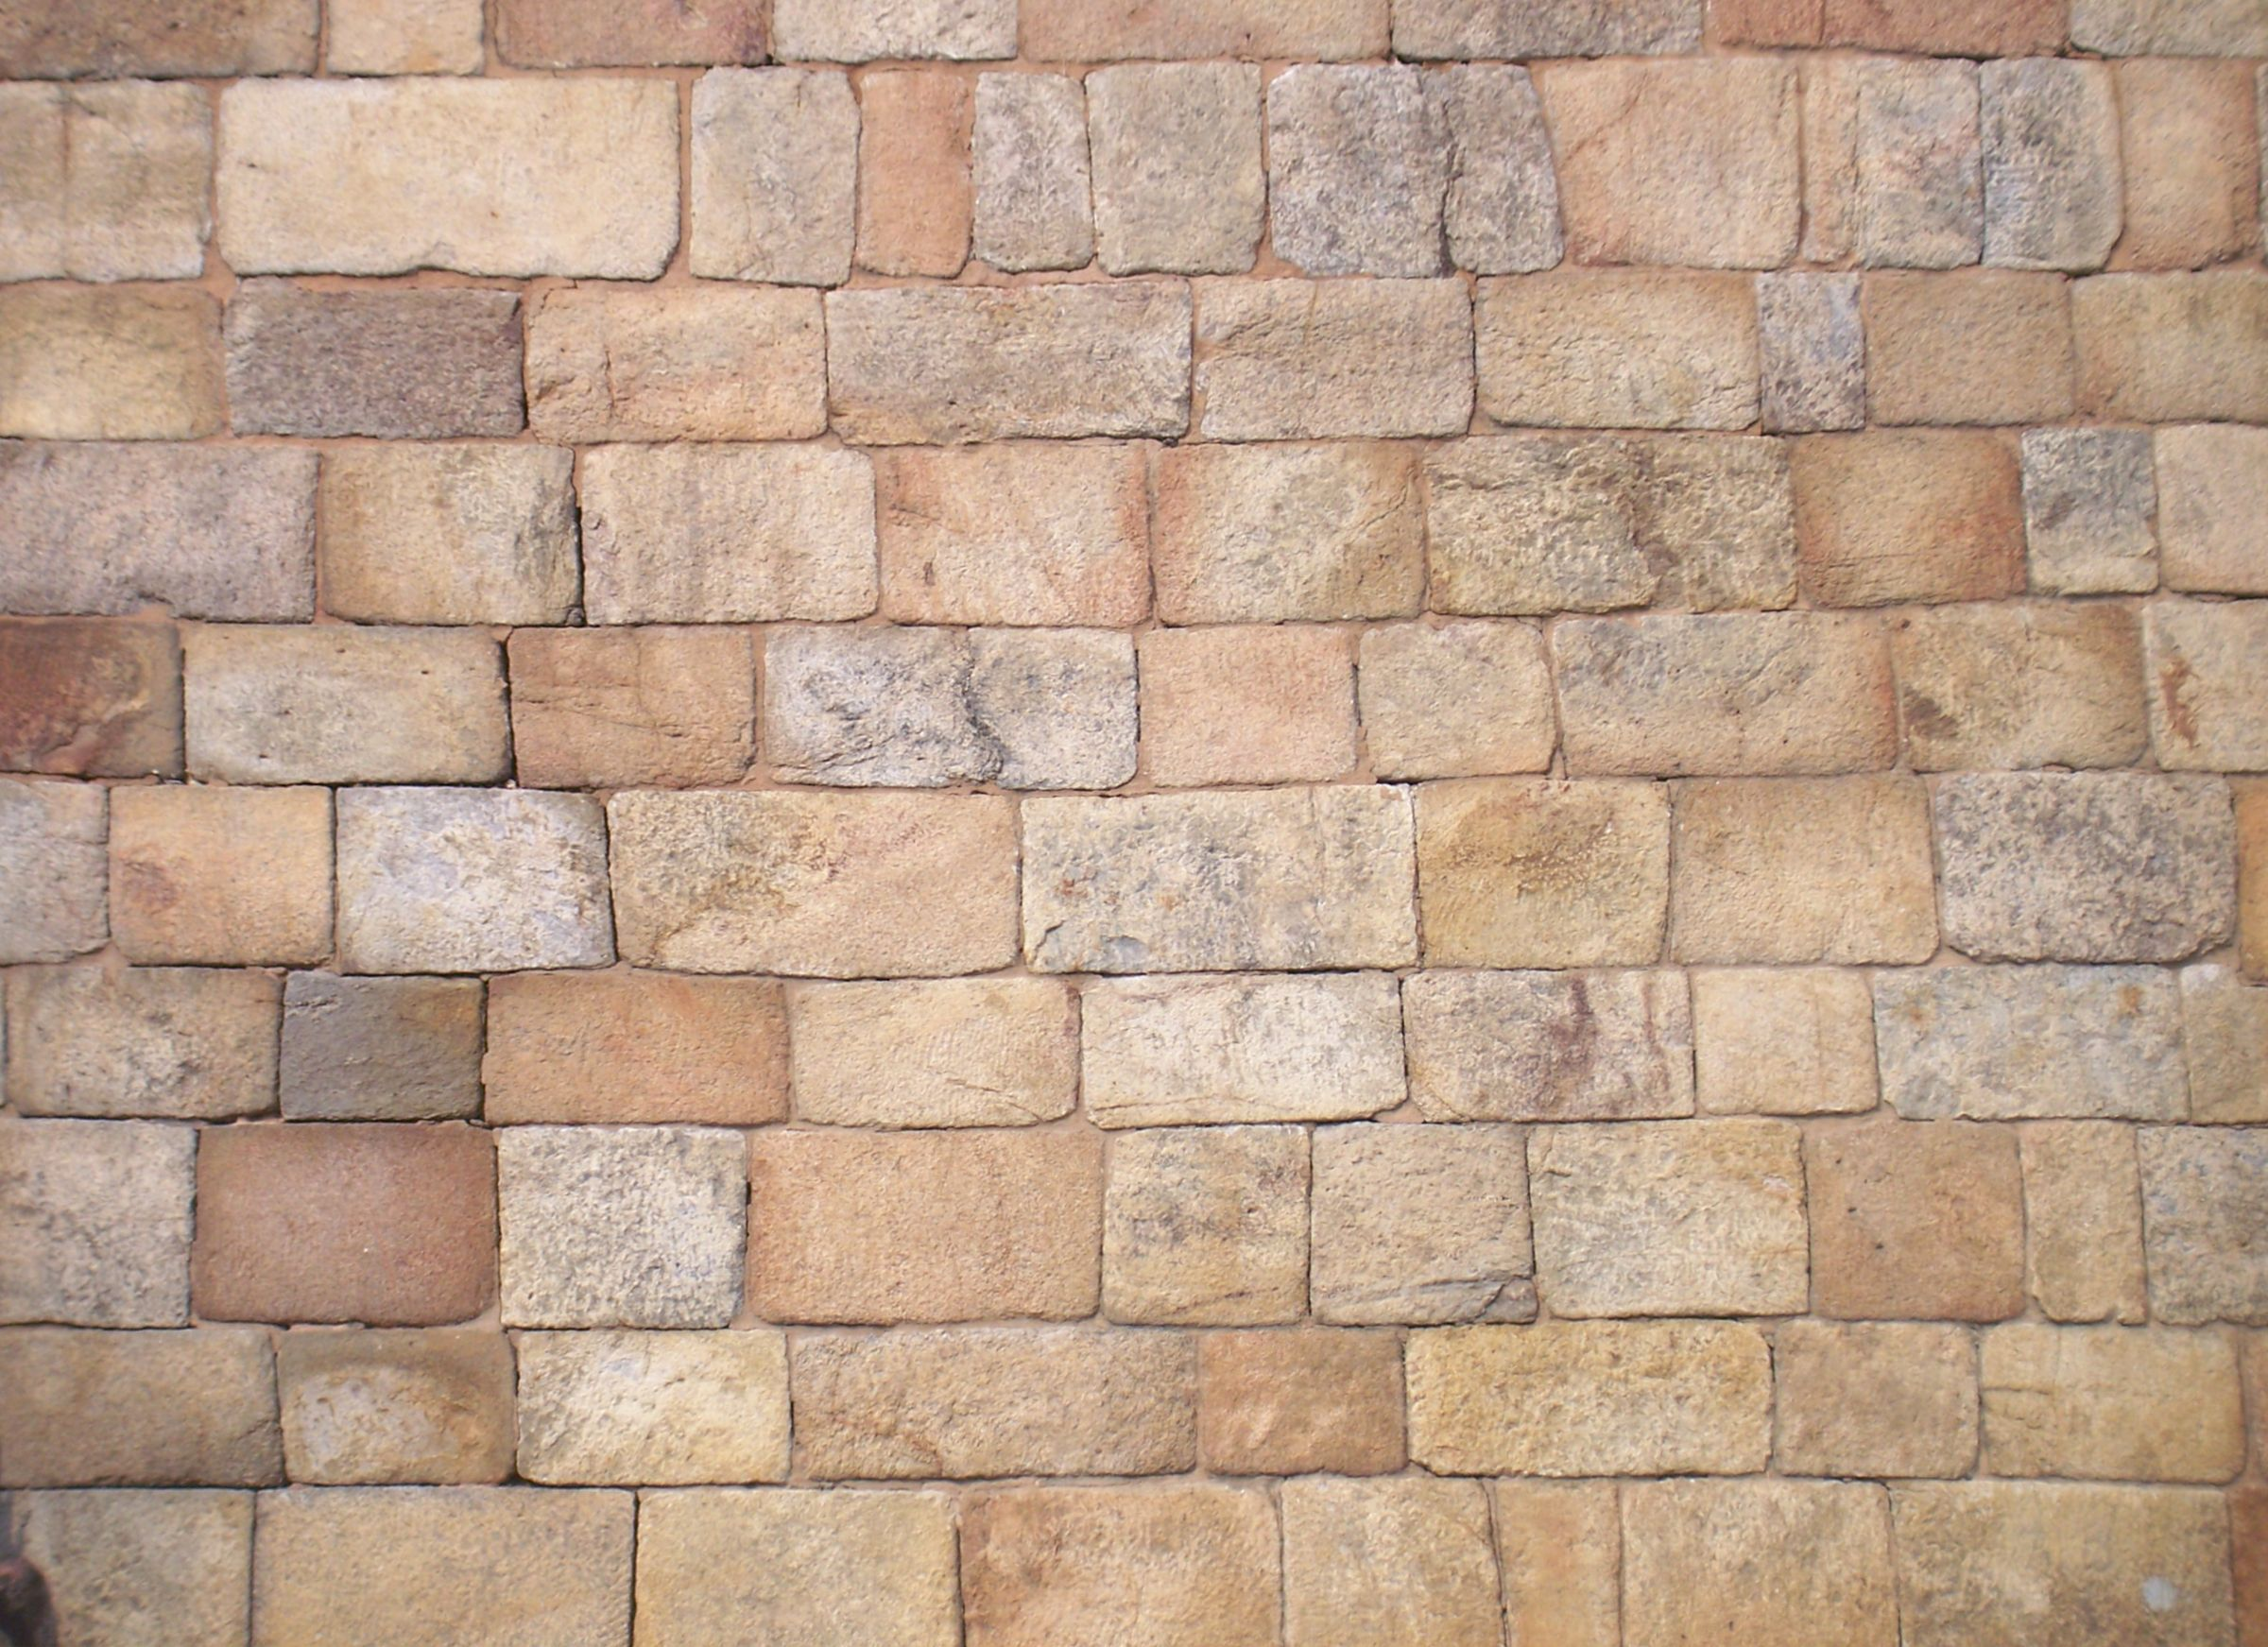 Best Texture For Walls Stonewall019 Stone Walls High Resolution Texture